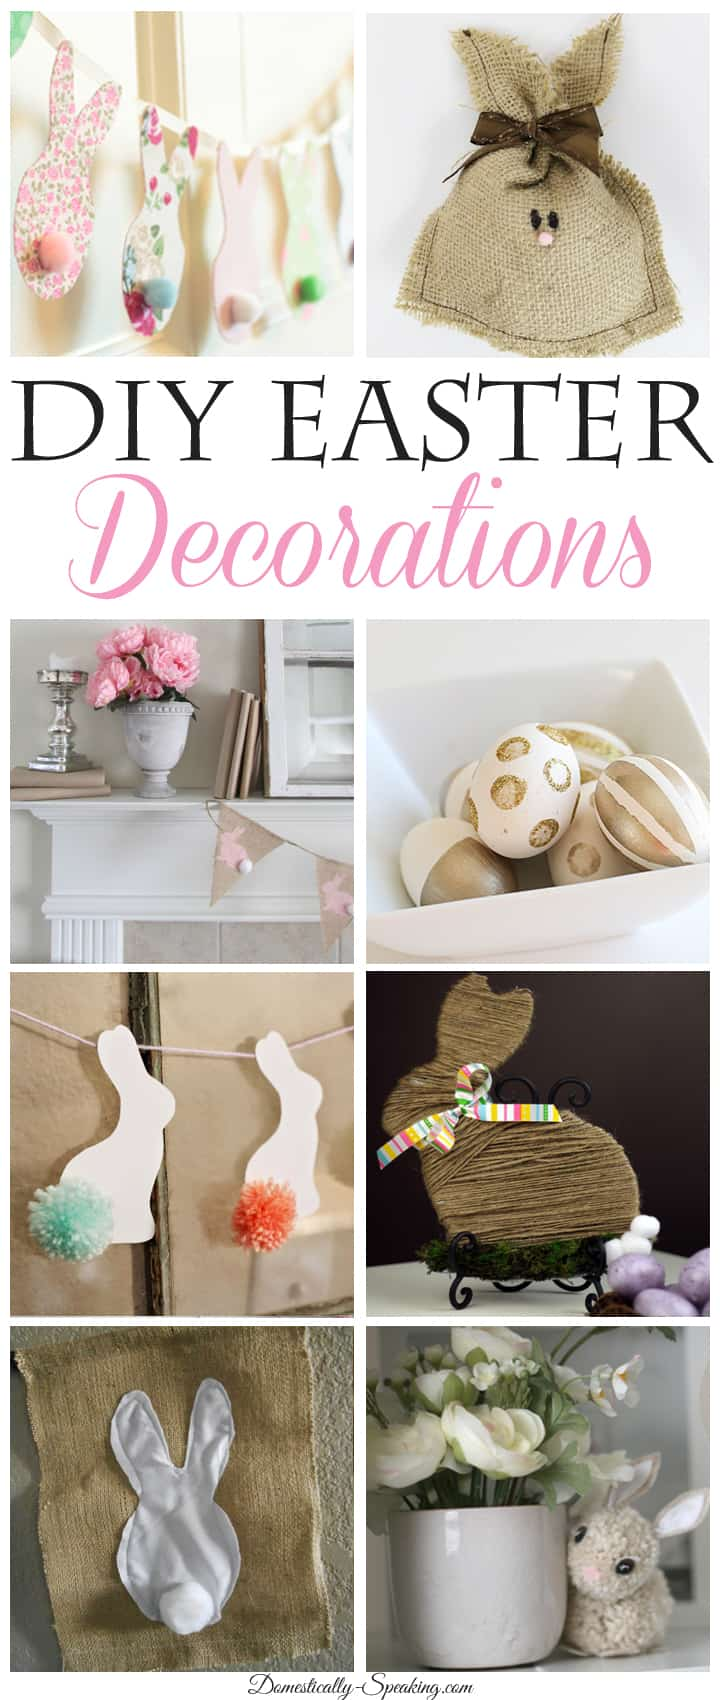 Best 8 Diy Easter Decorations Weekend Features This Month